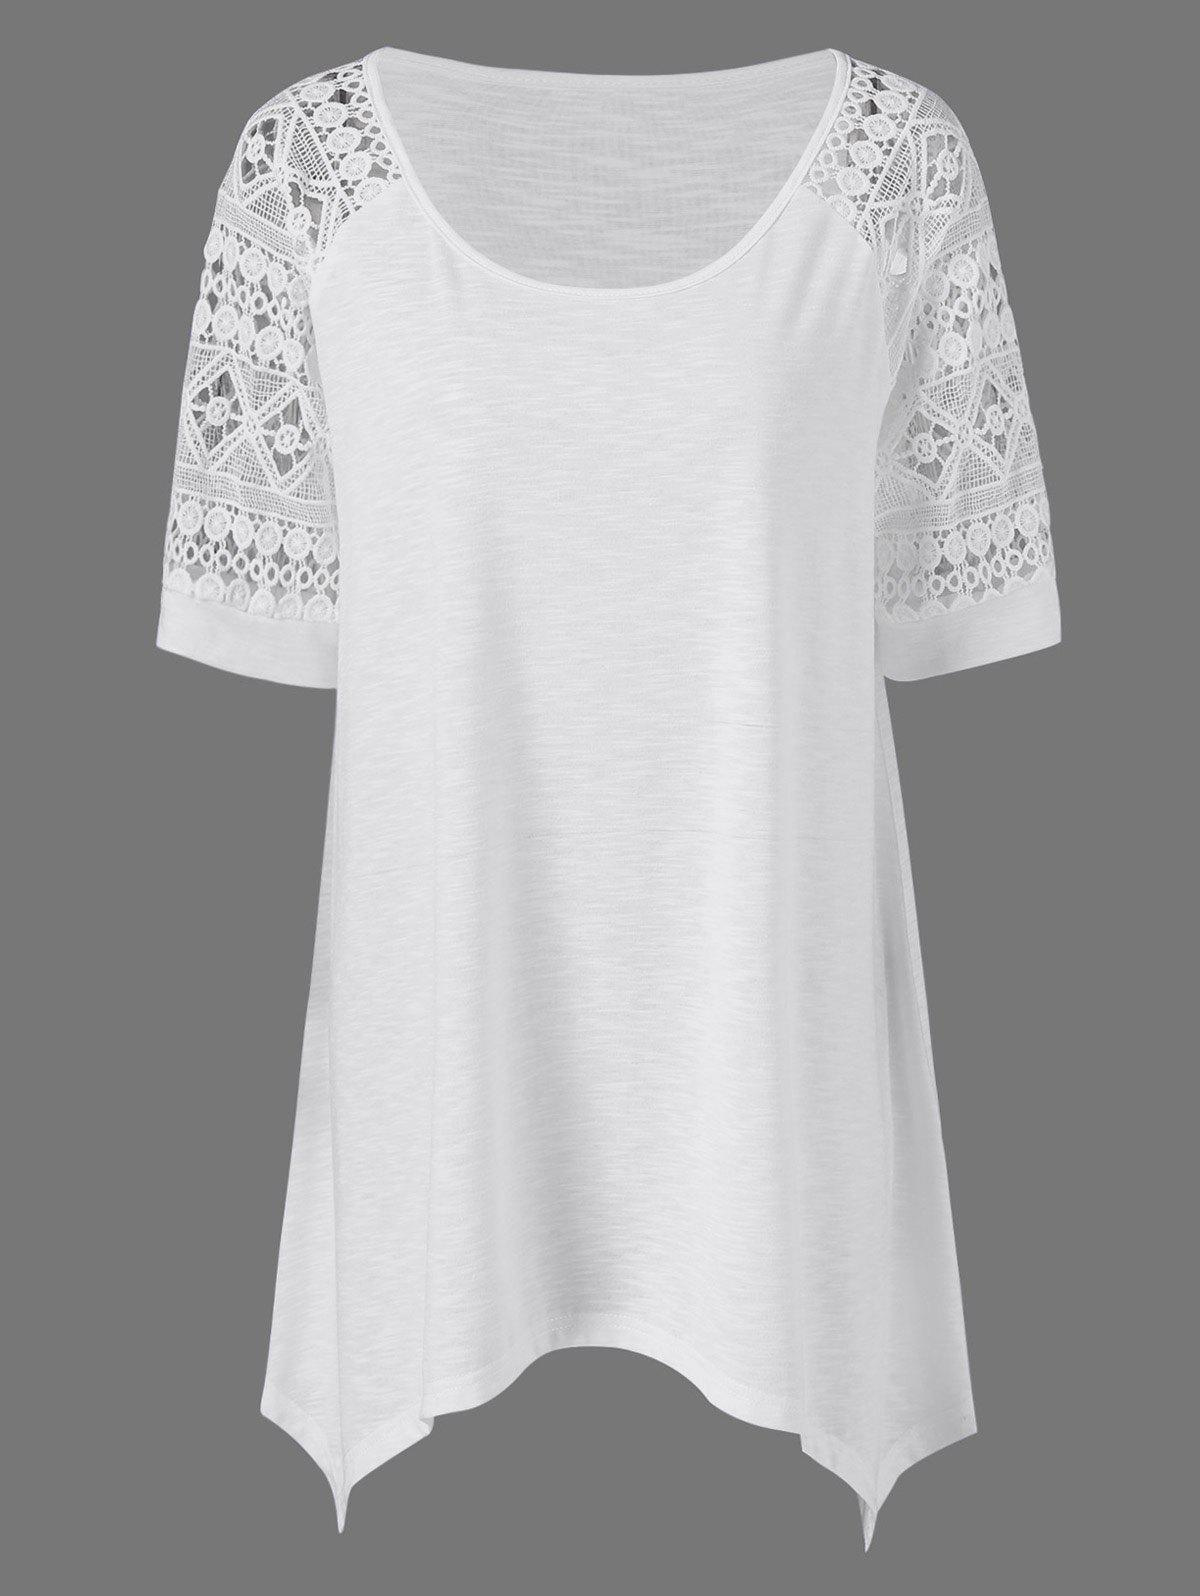 Plus Size Raglan Sleeve Crochet Trim Long T-Shirt - WHITE 2XL